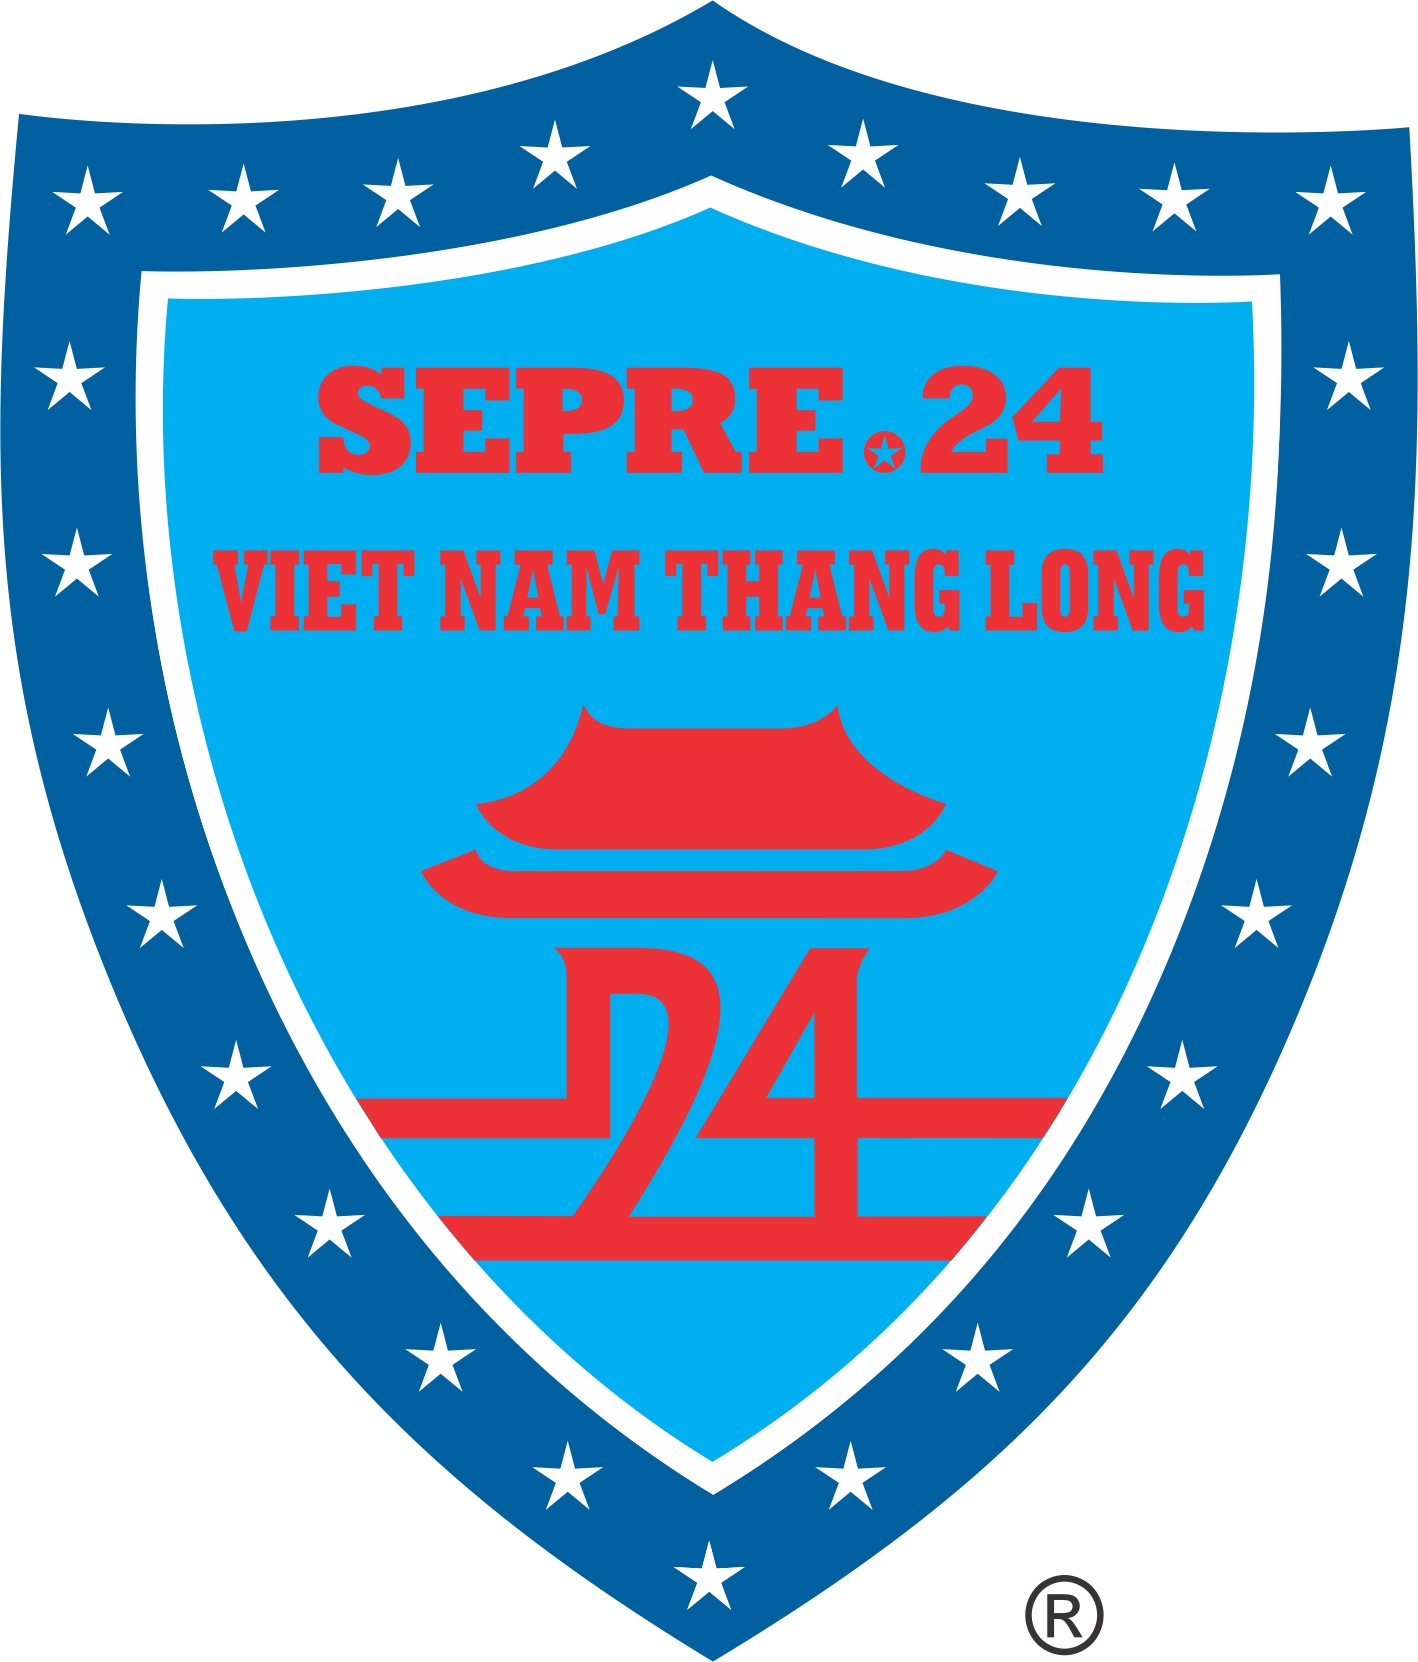 VIET NAM THANG LONG SEPRE.24 SECURITY SERVICES CO., LTD